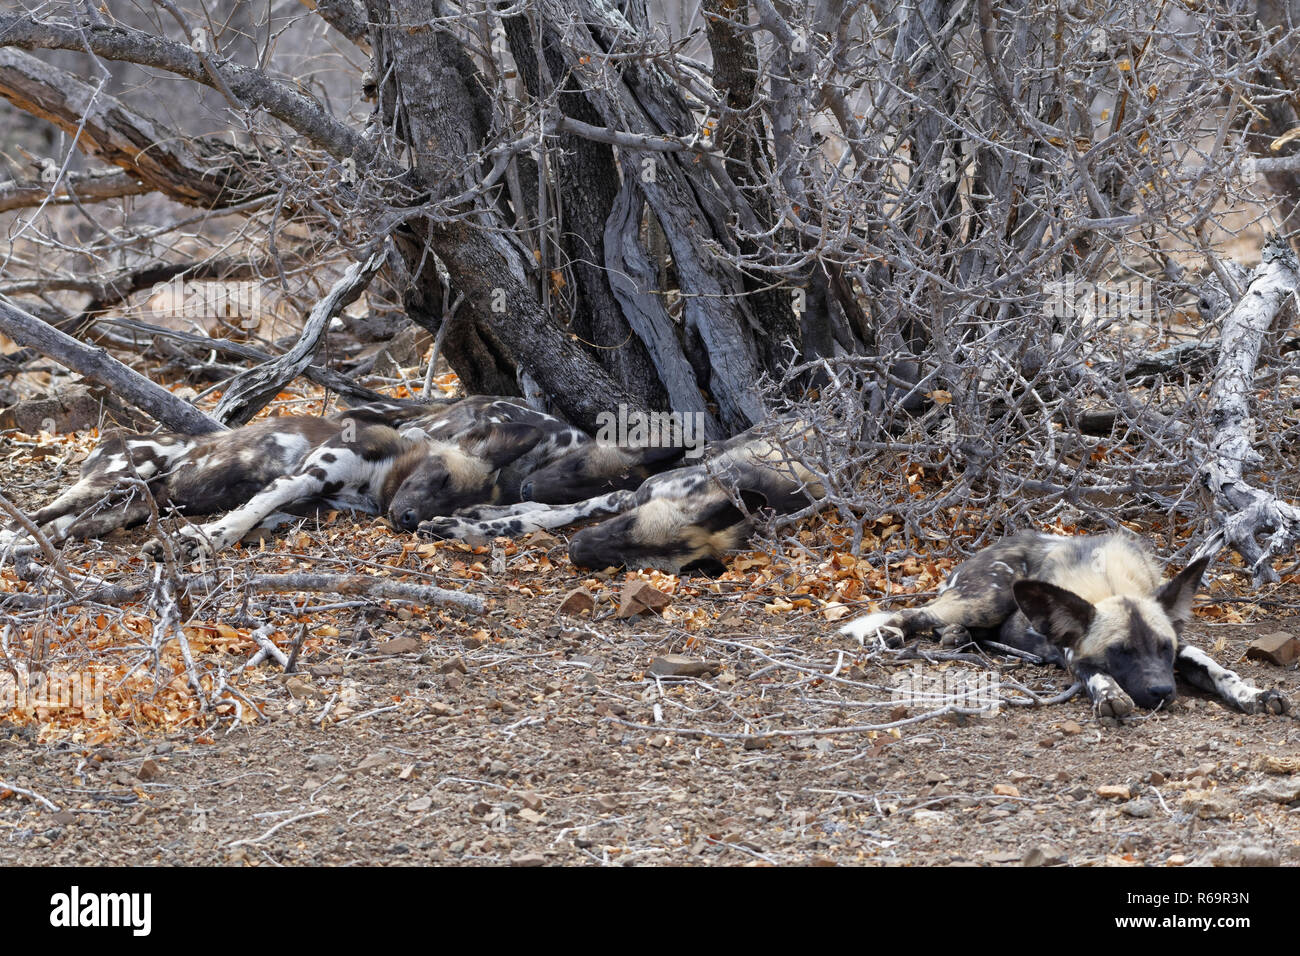 African wild dogs (Lycaon pictus), pack lying on arid ground, sleeping under dry bush, Kruger National Park, South Africa - Stock Image